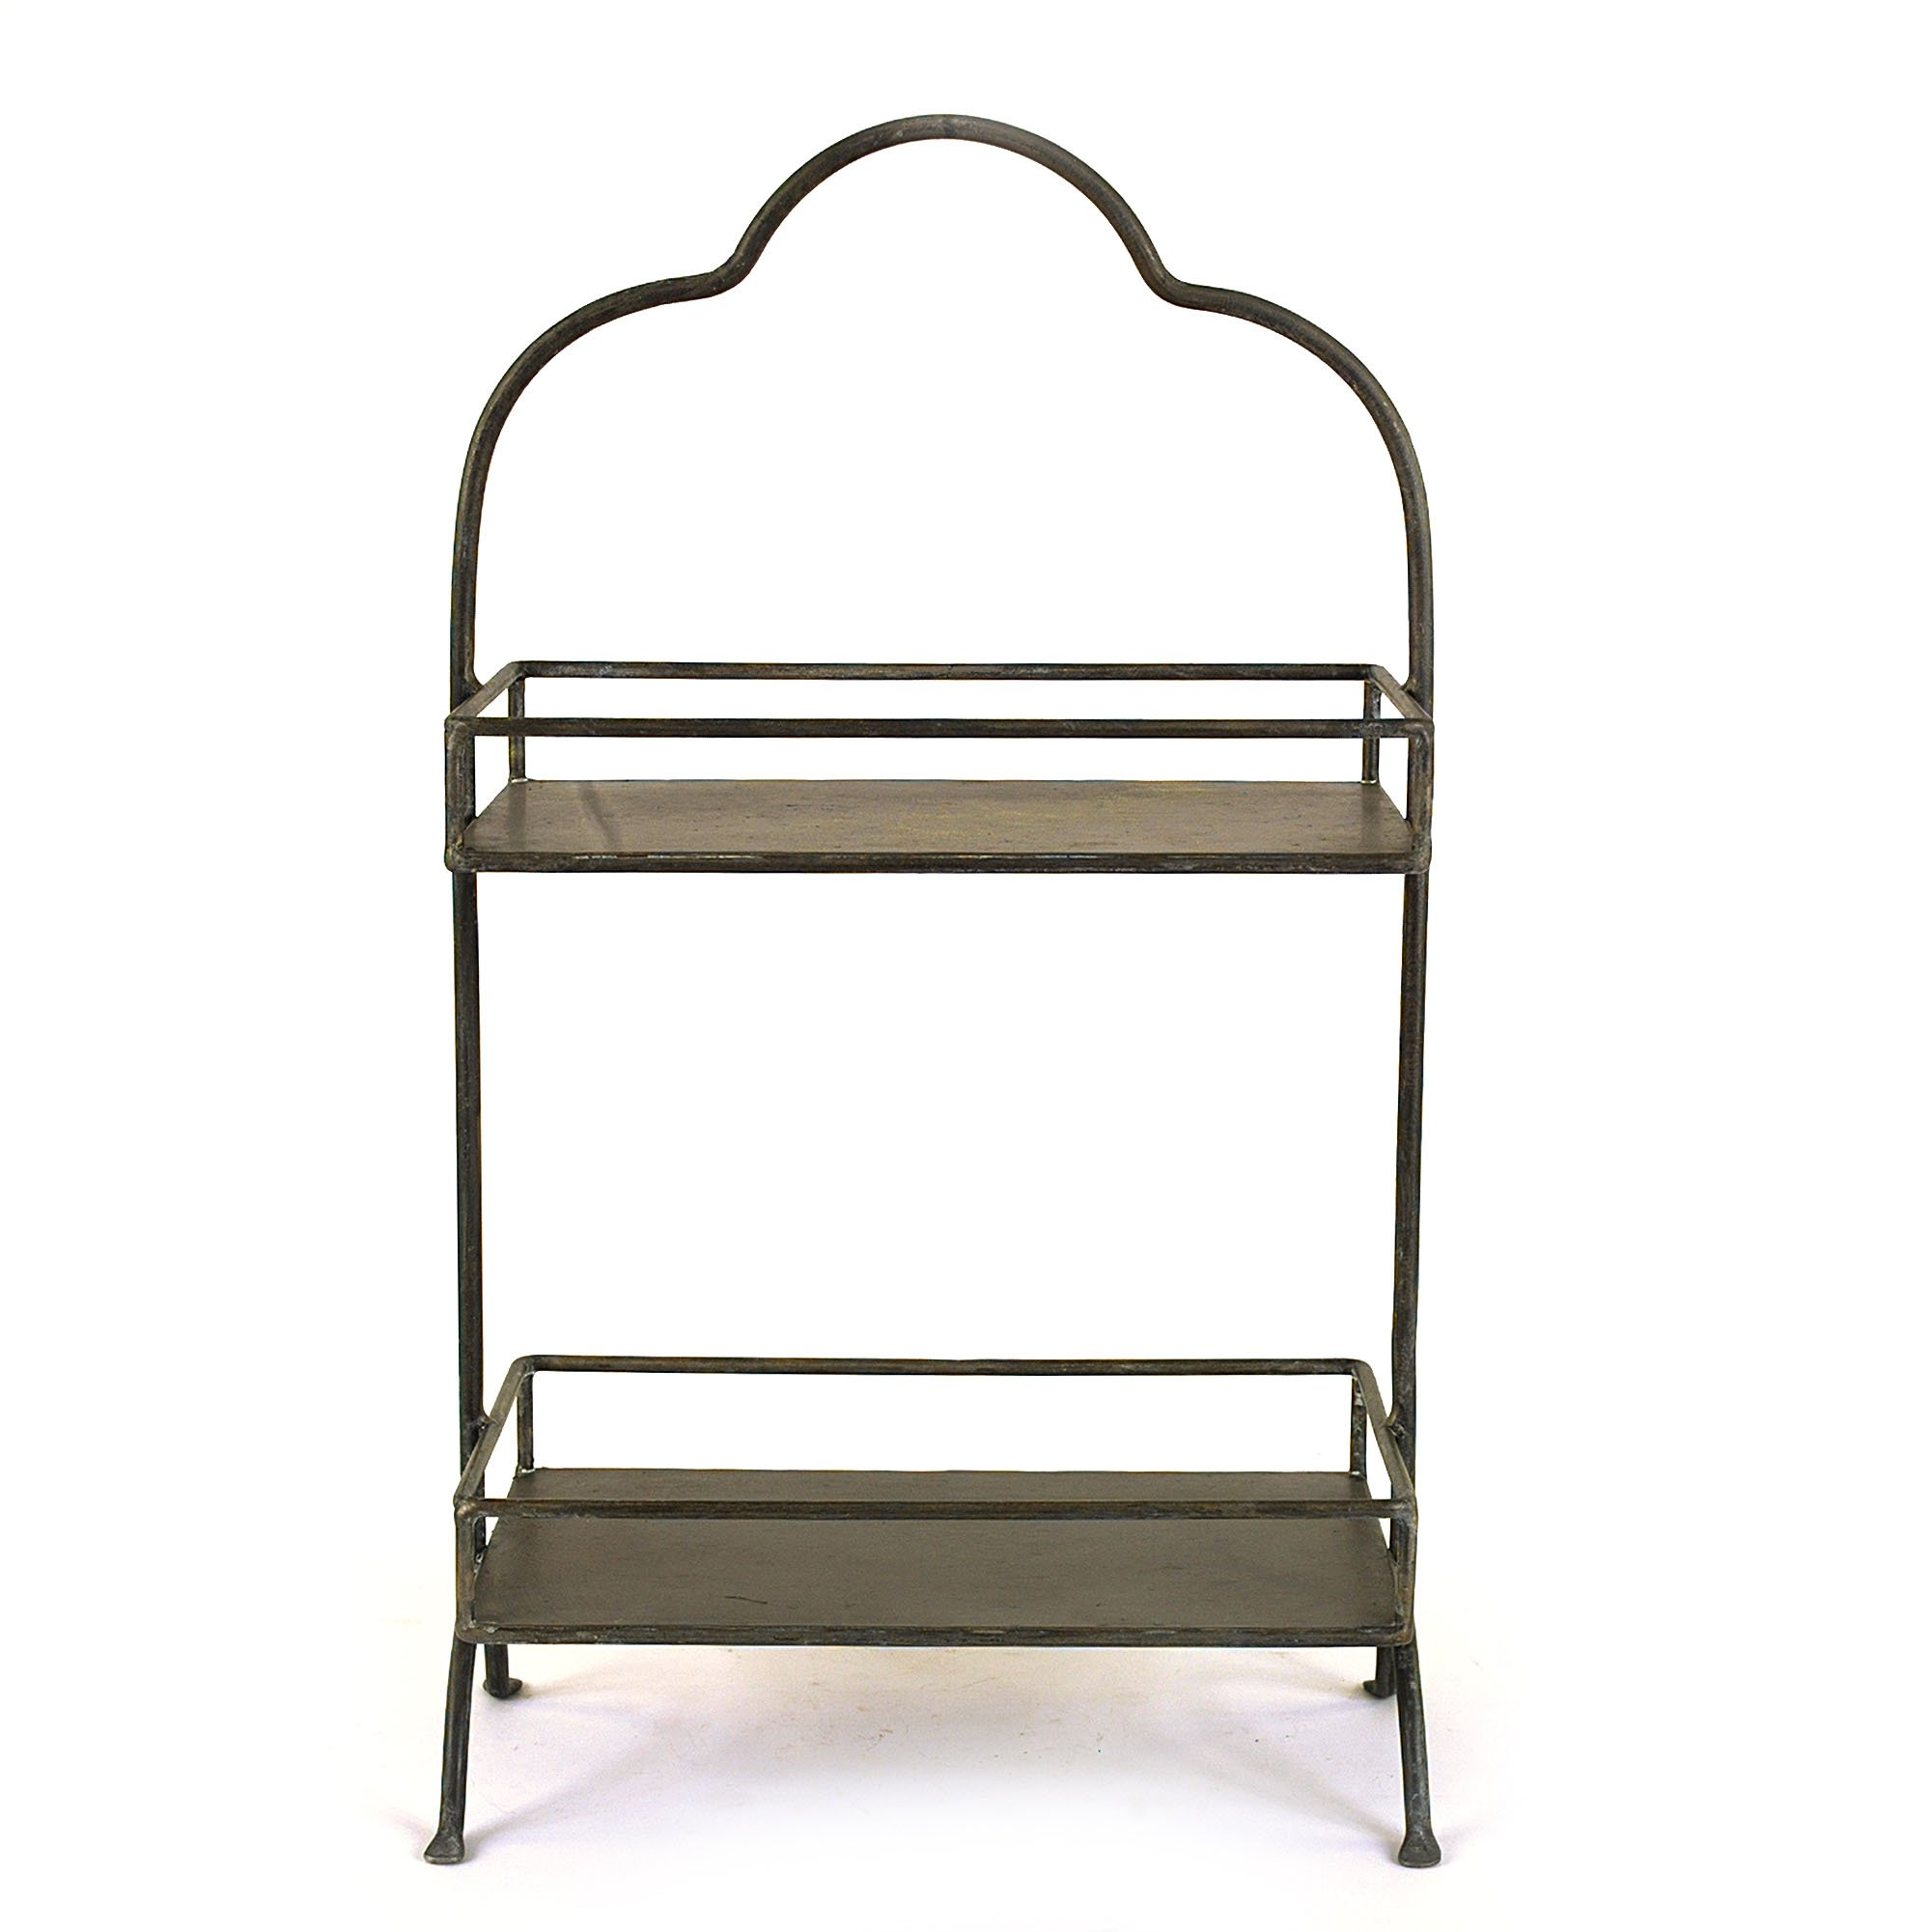 Creative Co-op Metal Two Tier Tray with Handle, 10.6'' L x 5.9'' W x 17.9'' H by Creative Co-op